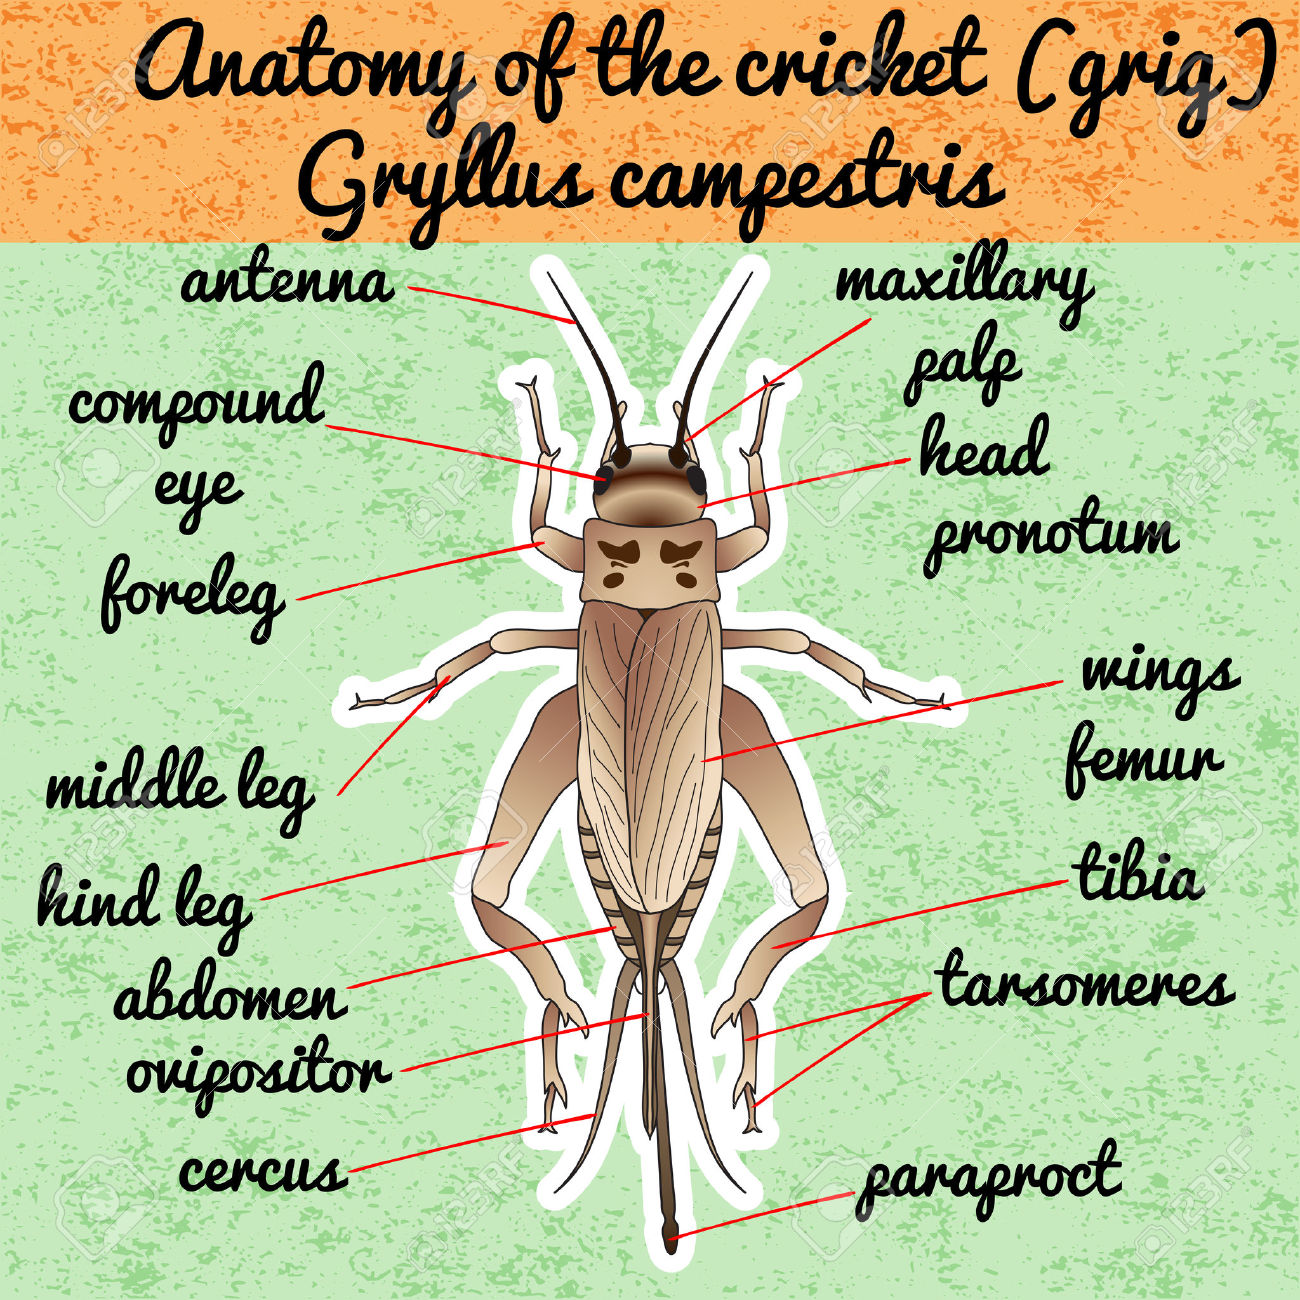 Stick insect anatomy